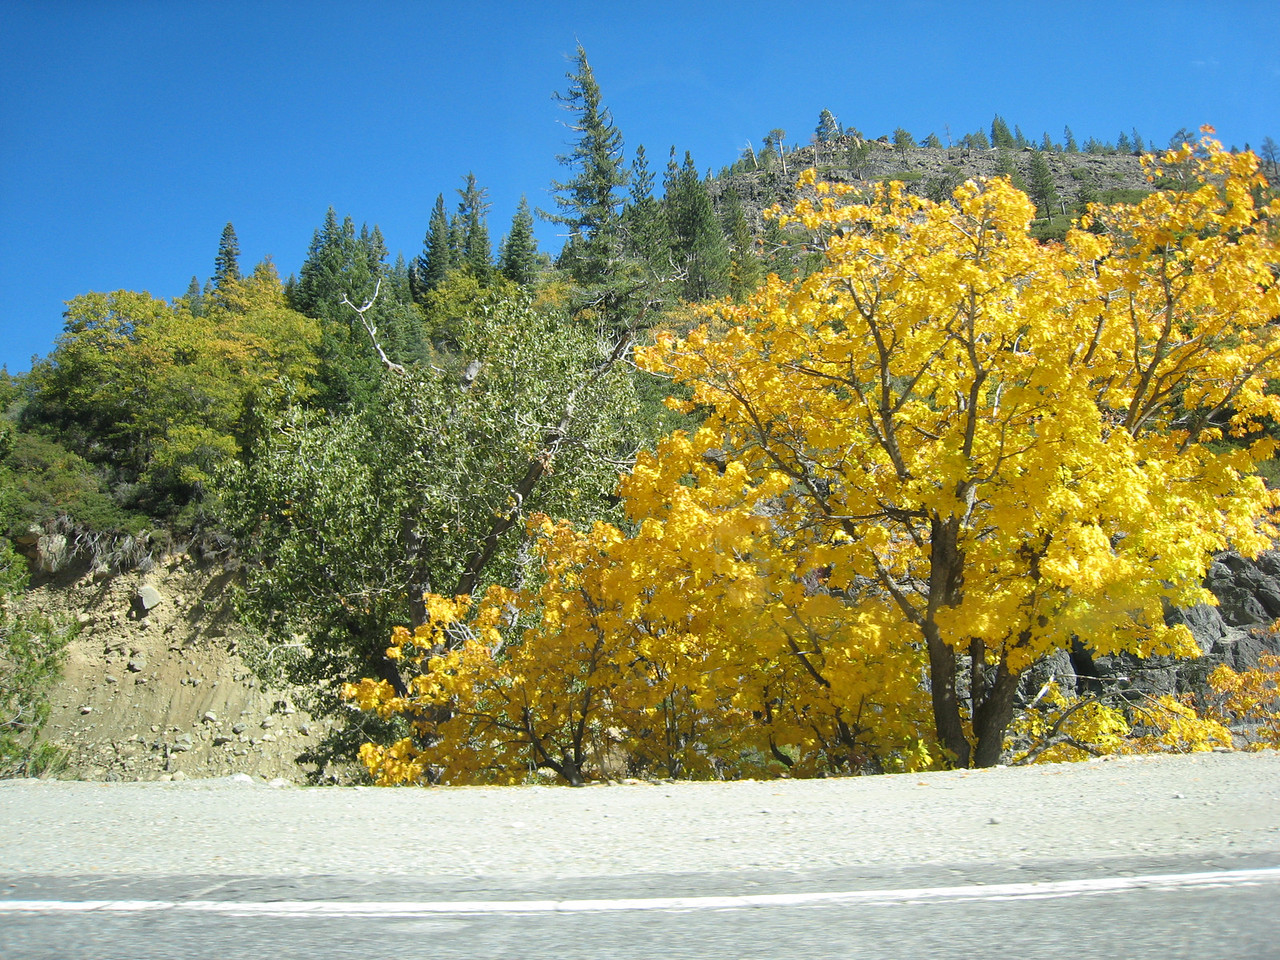 """California Black Oak. <br /> <br /> Plumas county has a nice fall colors blog...<br />  <a href=""""http://www.plumascounty.org/Awesome_Autumn/Leaf%20Peeper%20Reports.htm"""">http://www.plumascounty.org/Awesome_Autumn/Leaf%20Peeper%20Reports.htm</a>"""